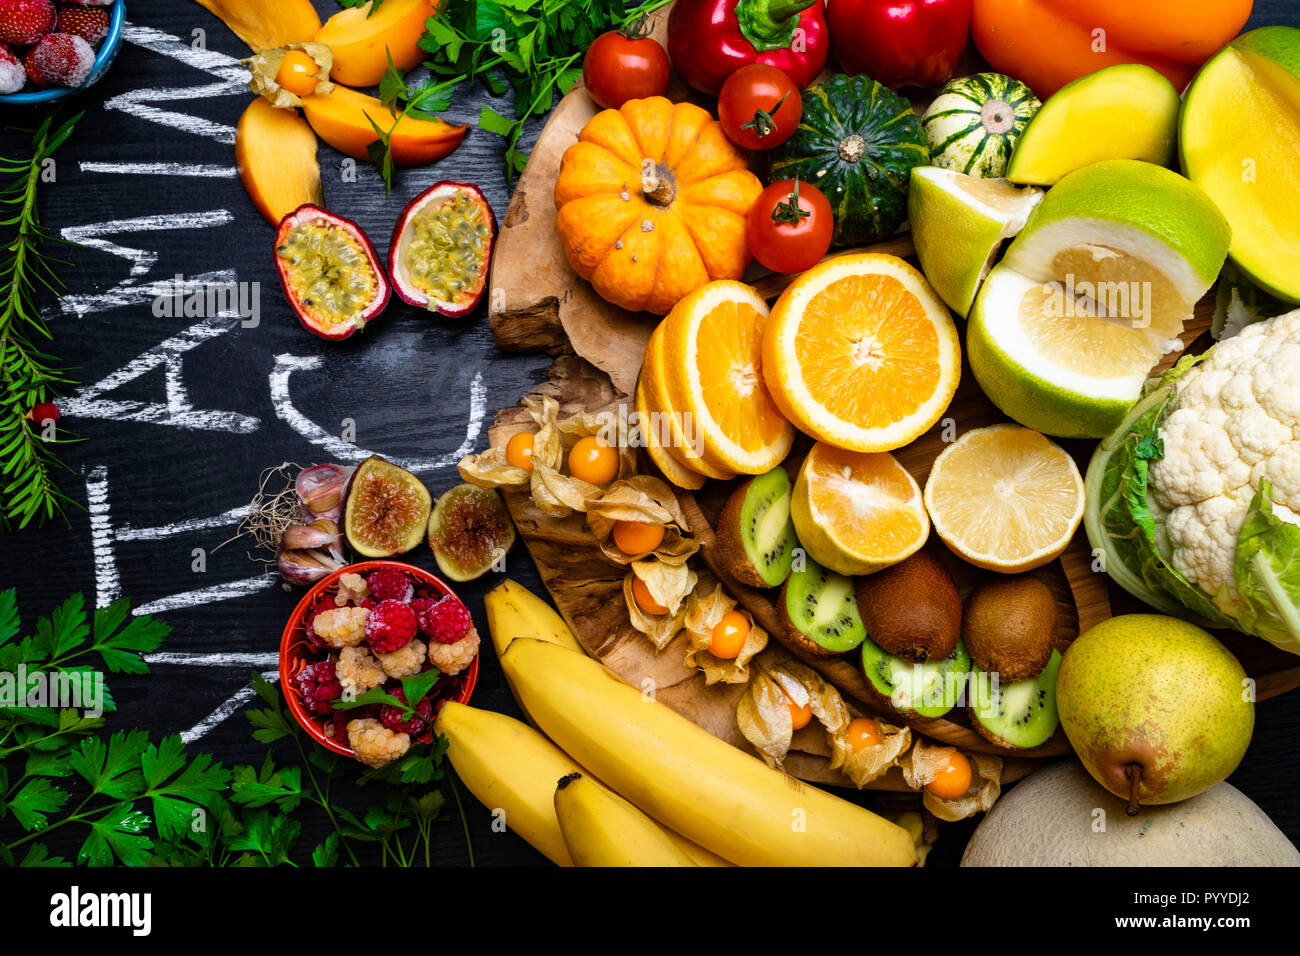 Vitamin C in fruits and vegetables. Natural products rich in vitamin C as oranges, lemons, pepper, kiwi, parsley leaves, garlic, bananas, mango, cabba - Stock Image